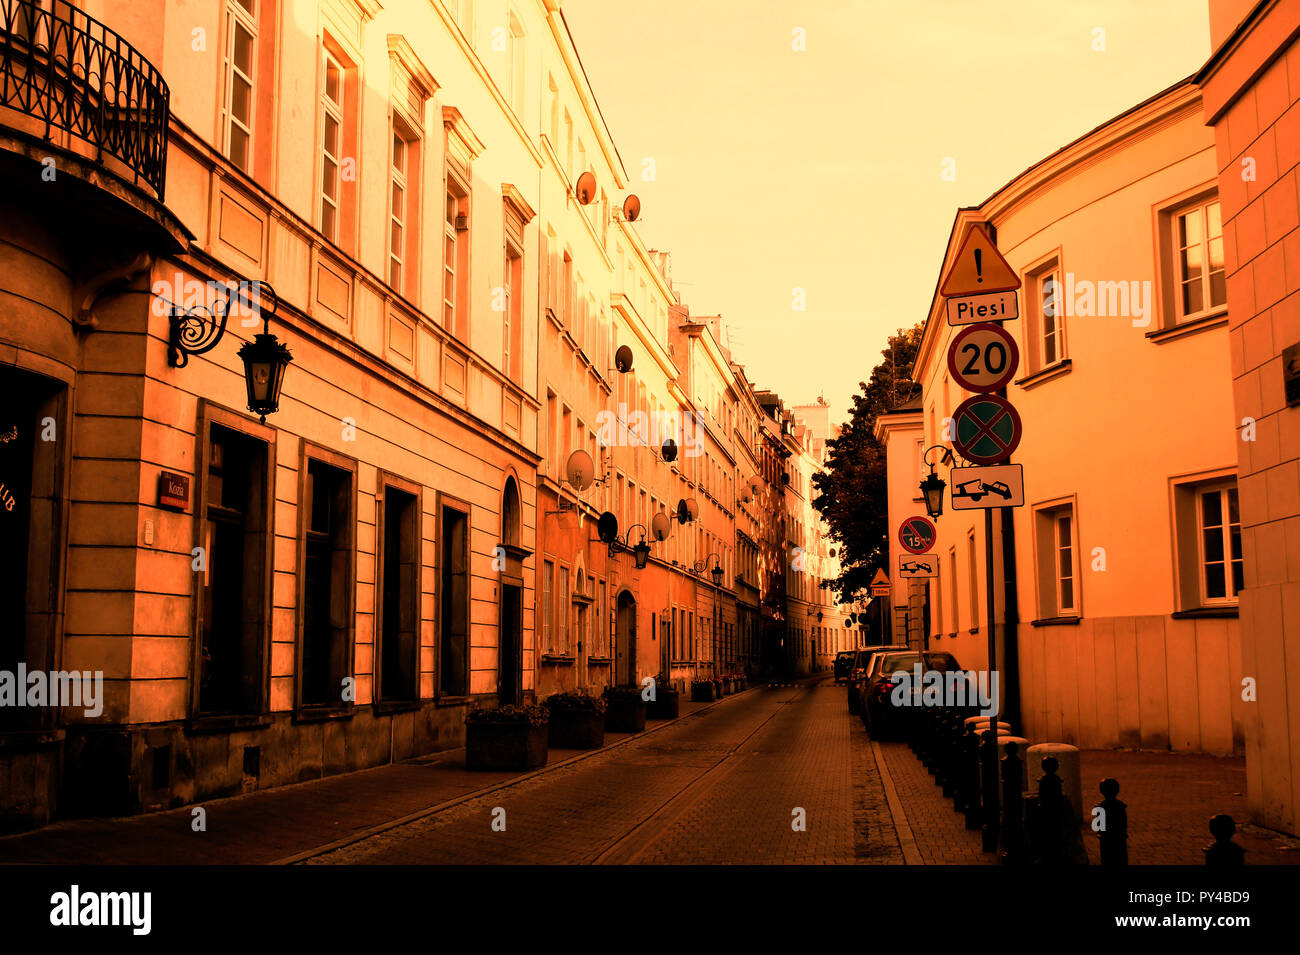 Part of a street in the older part of Warsaw in low key warm tones - Stock Image